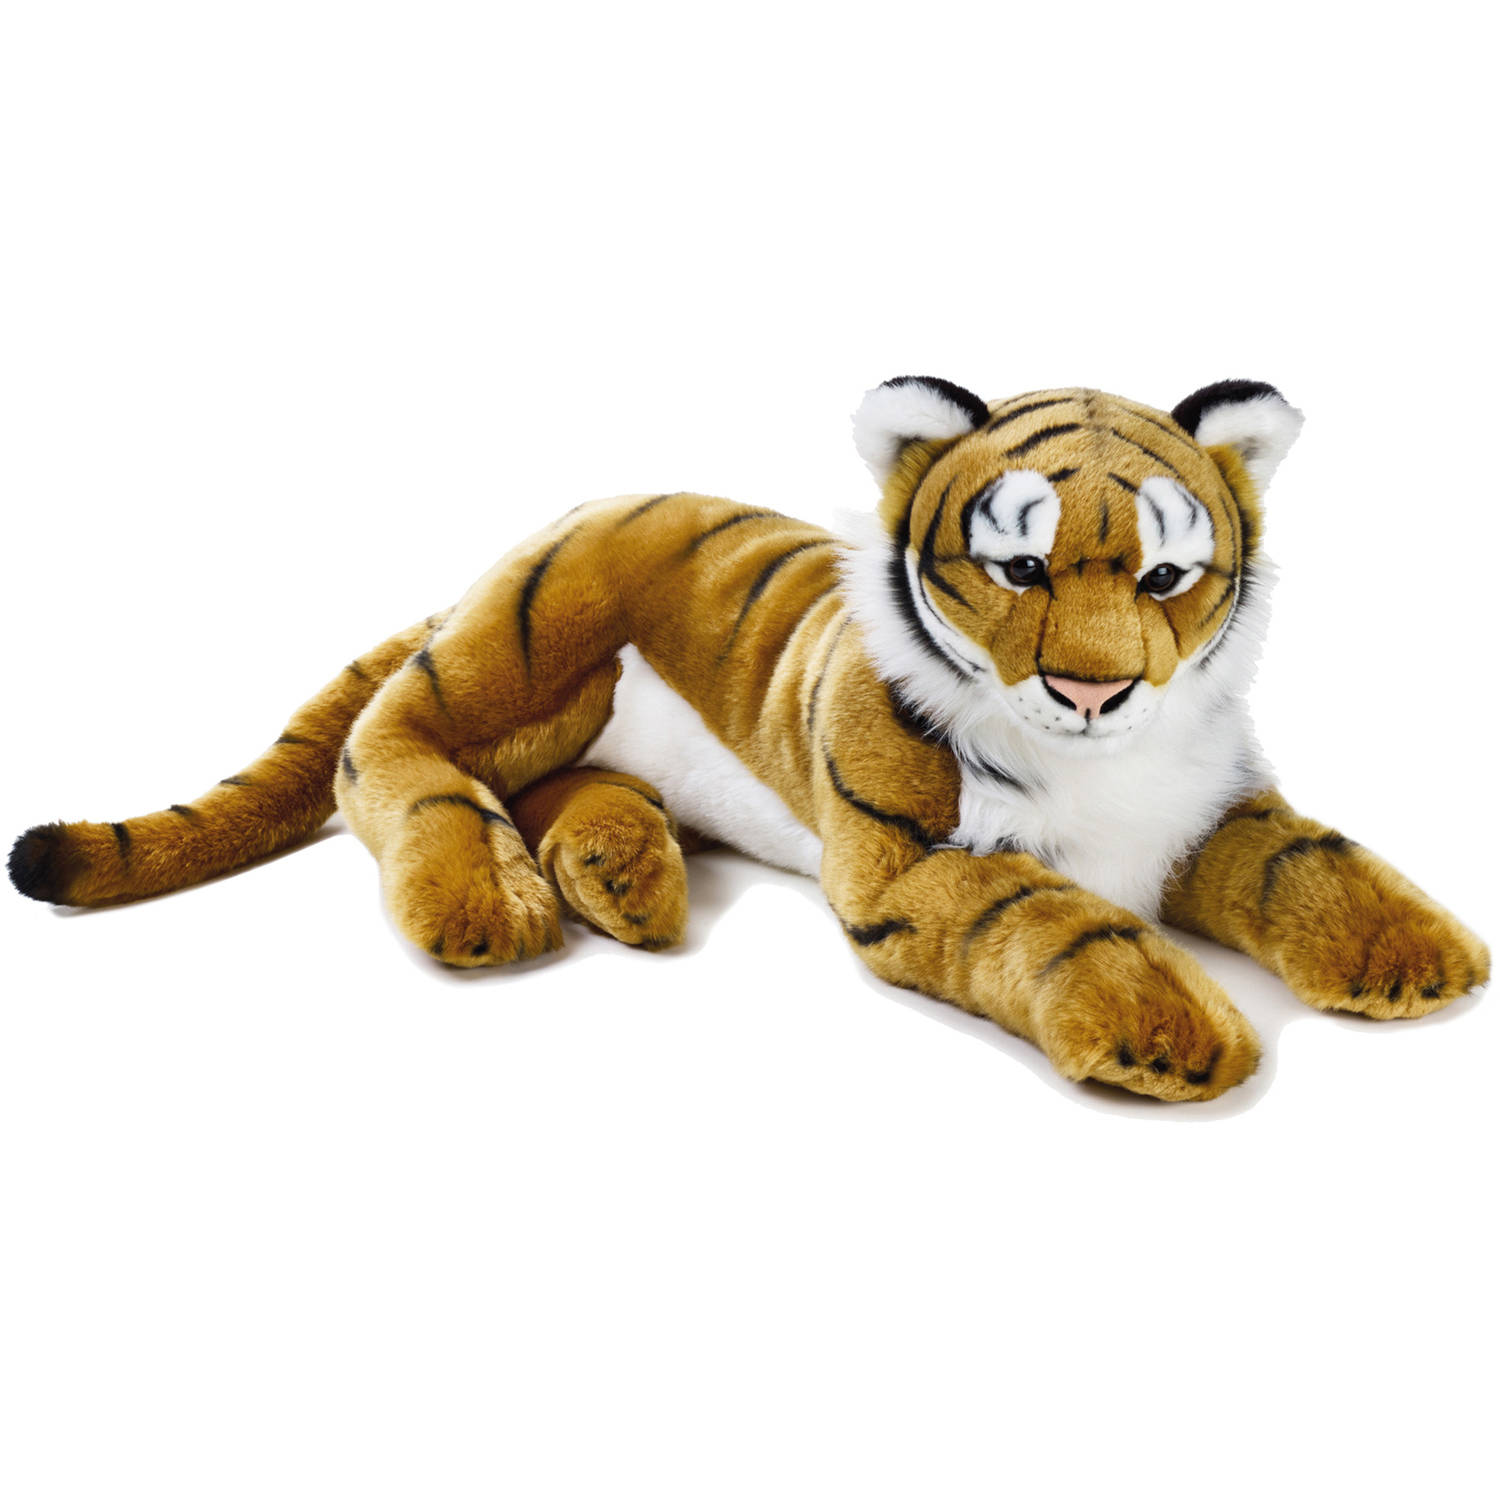 Lelly National Geographic Plush, Tiger by Venturelli